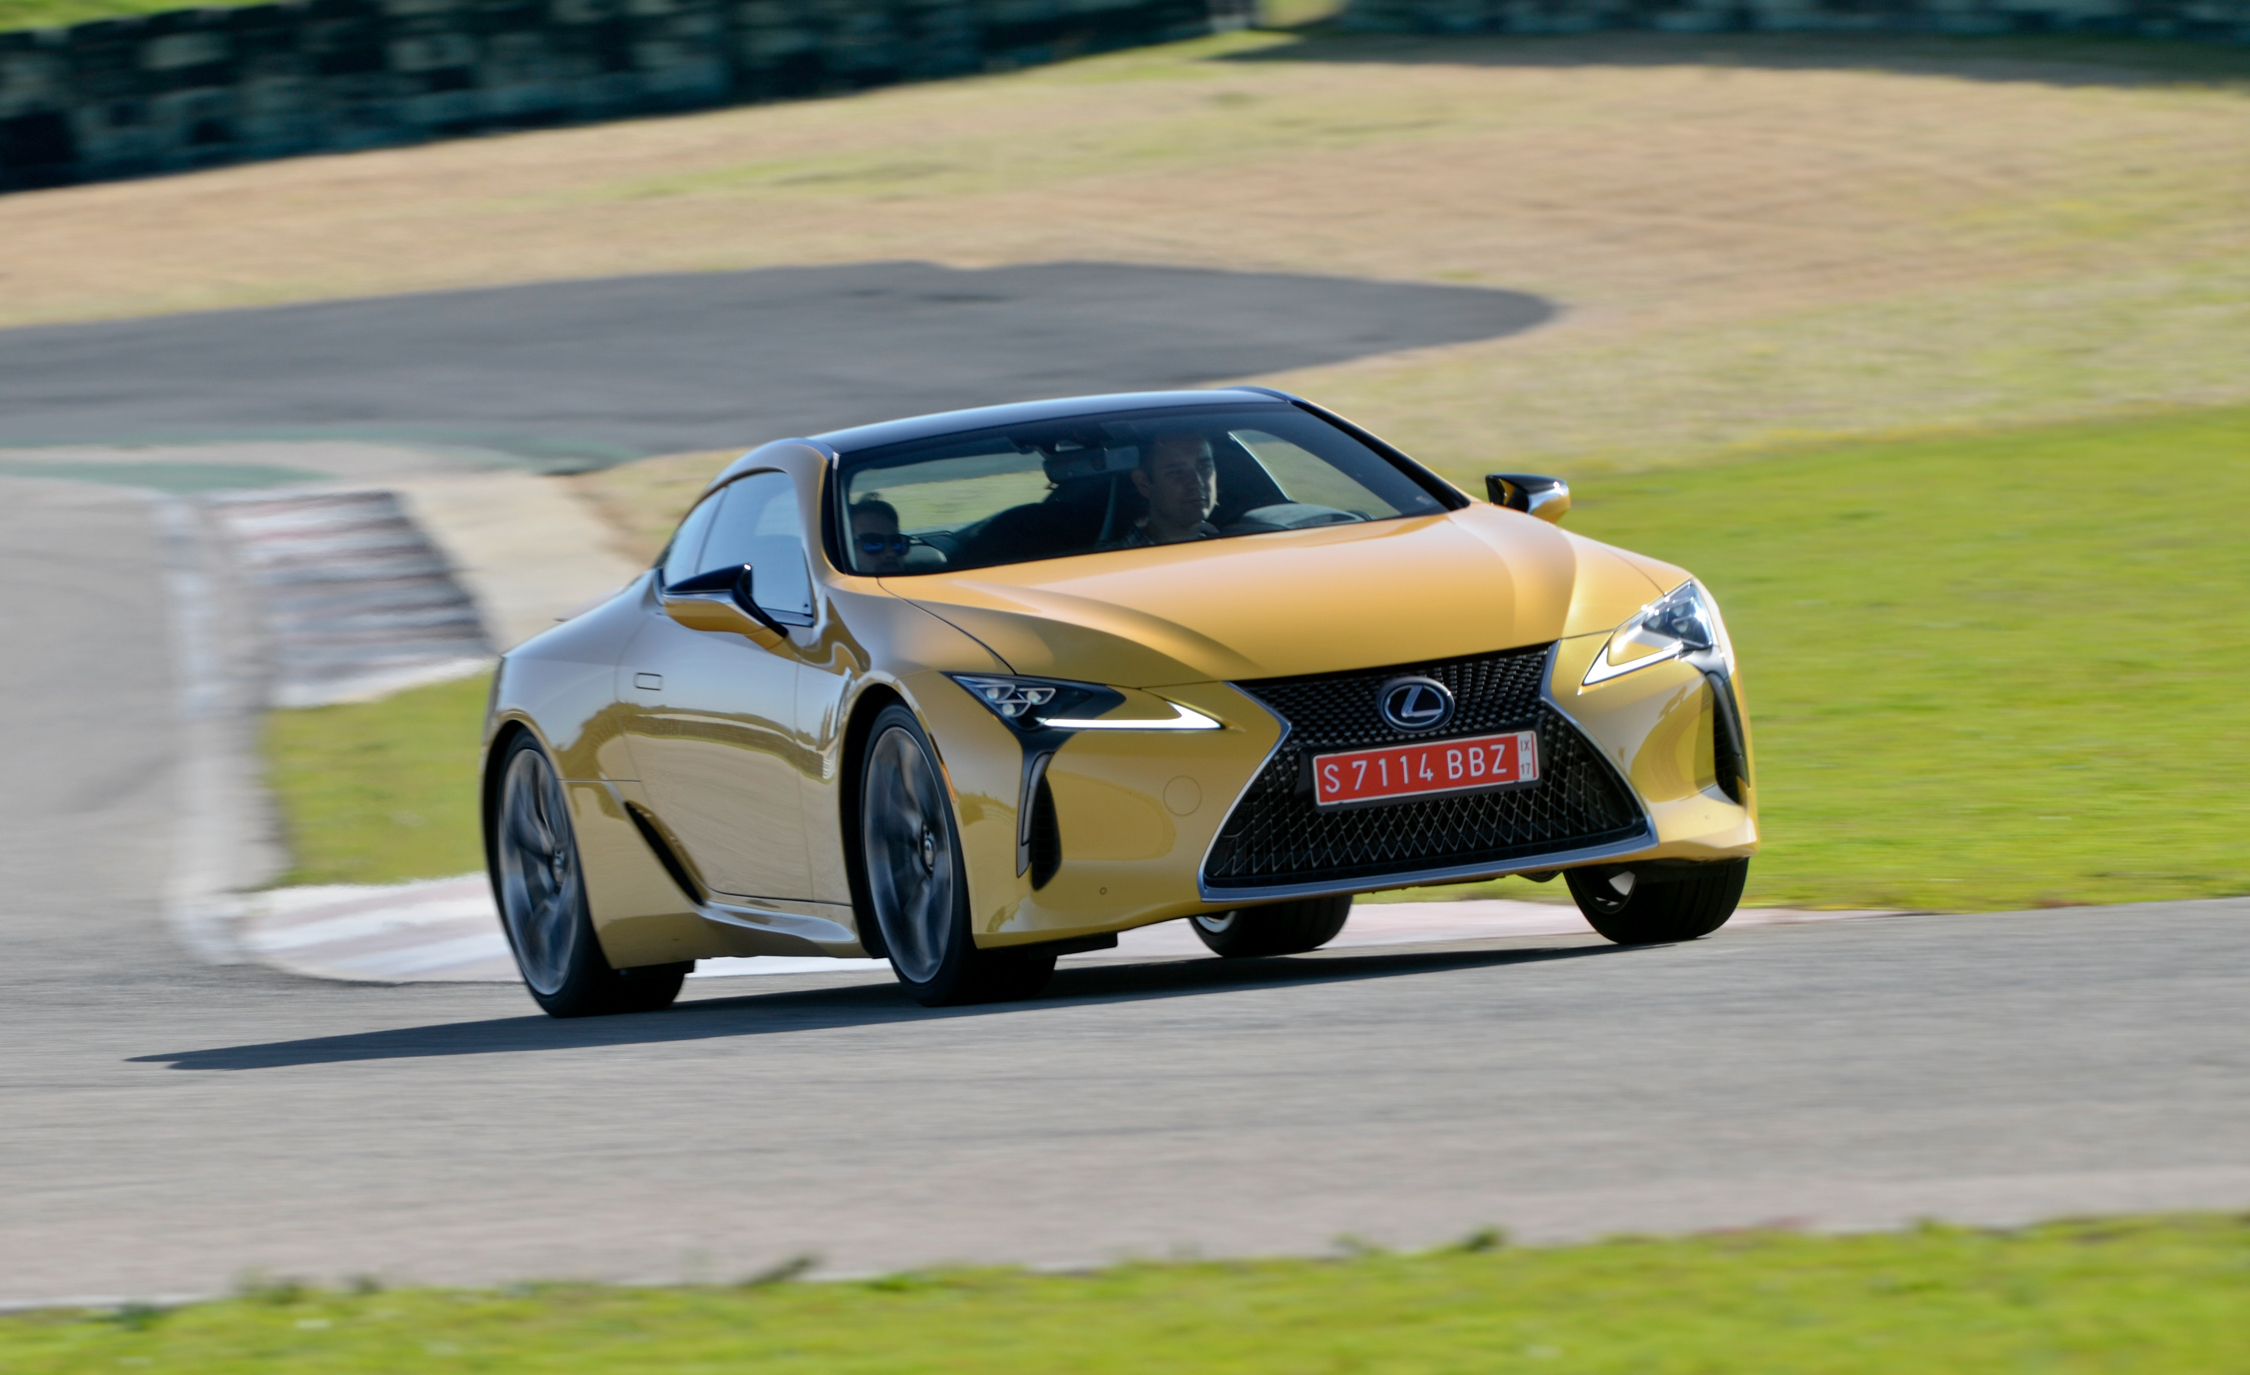 2018 Lexus Lc 500 Yellow Test Drive Front View (View 18 of 84)